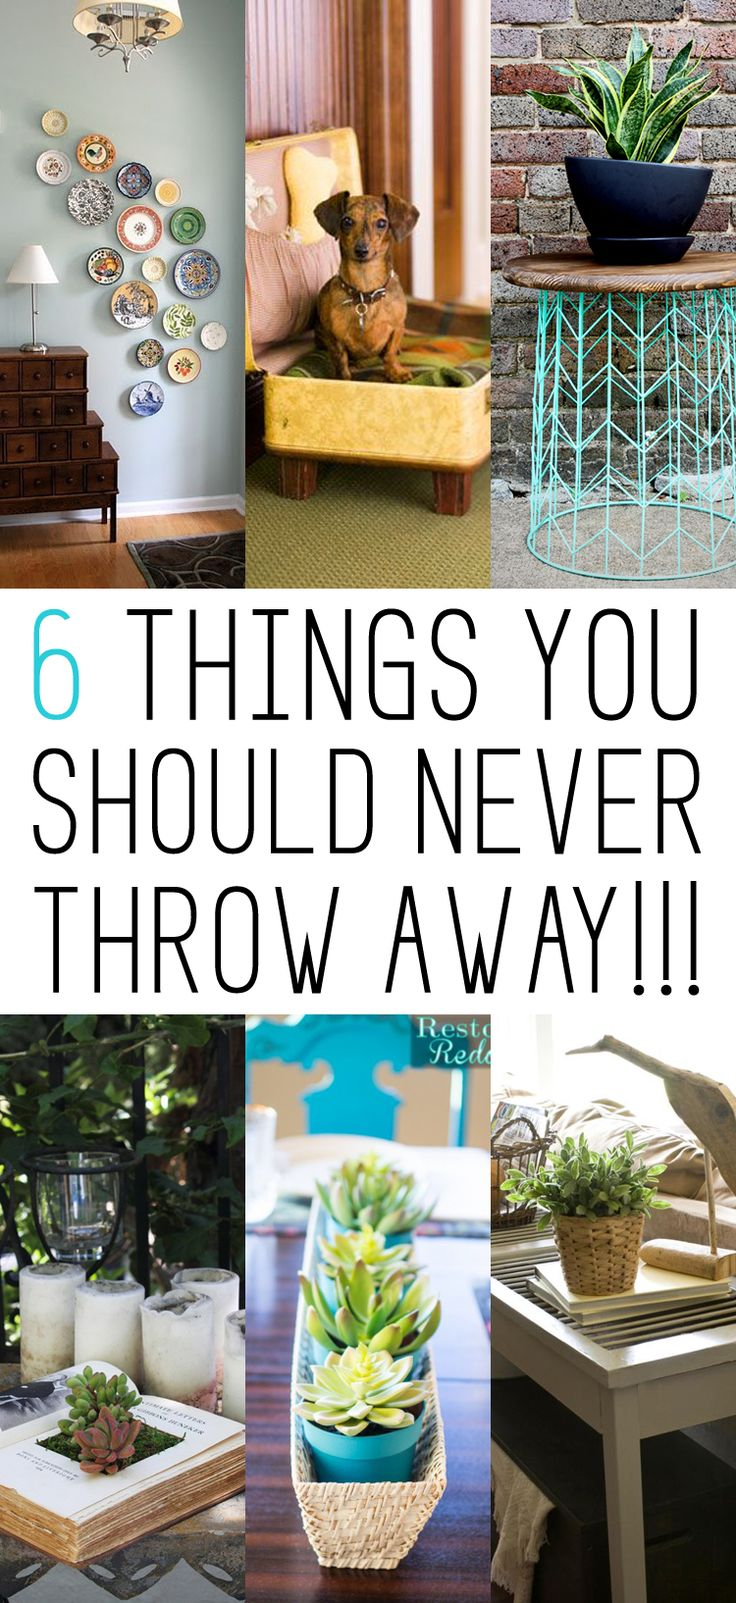 6 Things You SHOULD NEVER THROW AWAY - The Cottage Market